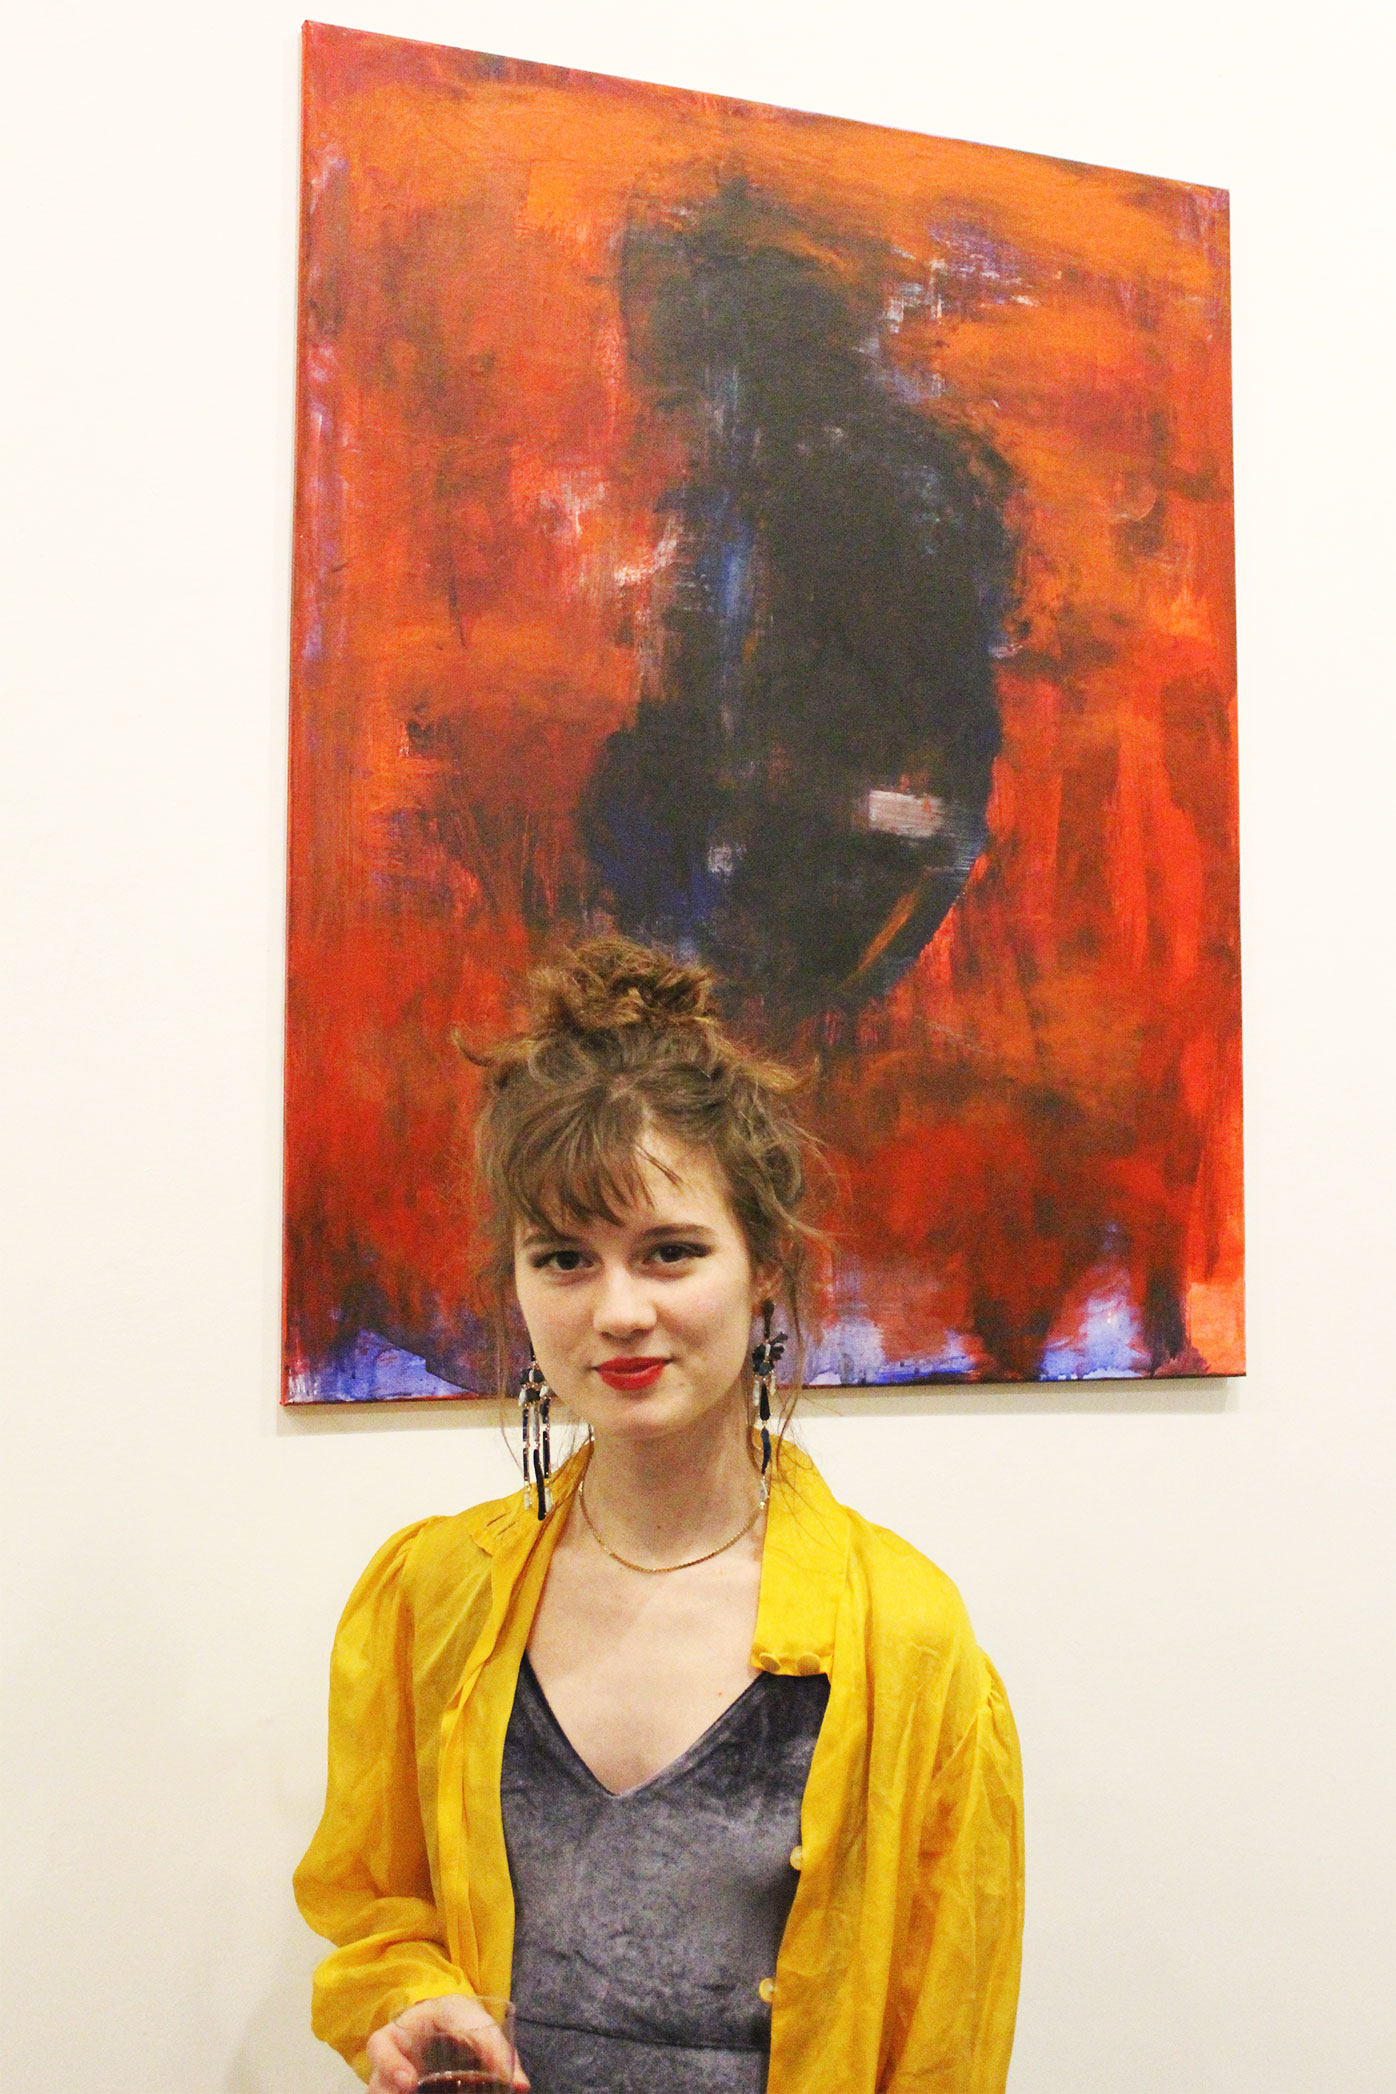 Fleur Adderley - Not only did Fleur organise and curate this exhibition but also showcased her own work comprising of abstract paintings of female form.Visit Fleur's art Instagram here.